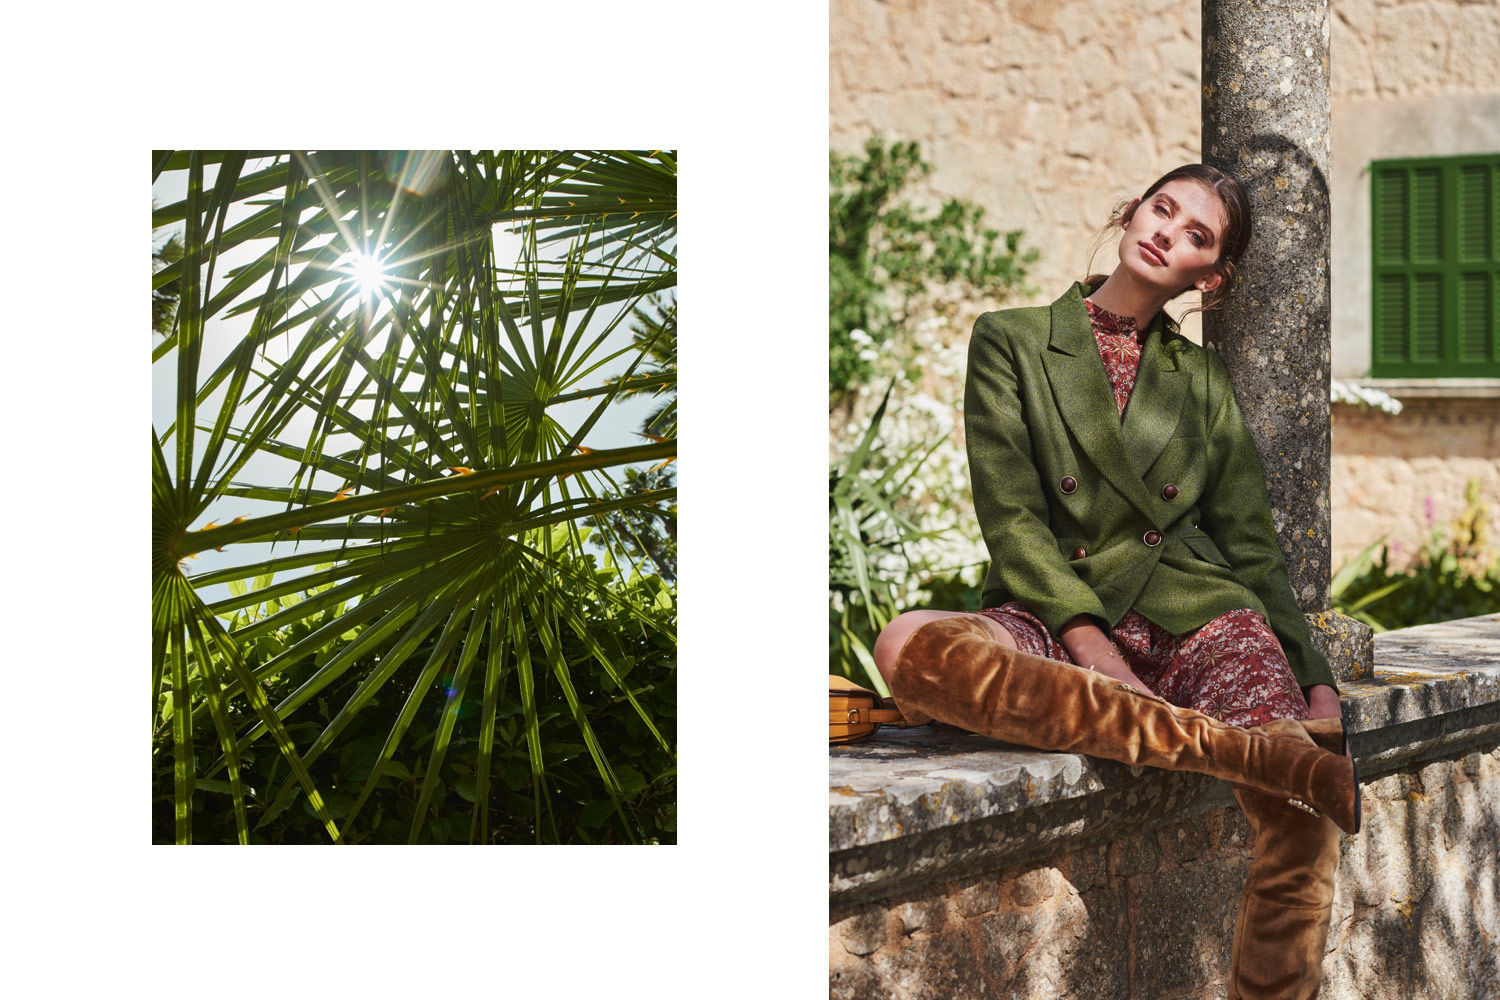 Astrid Obert Photography presents botanical burdastyle fashion